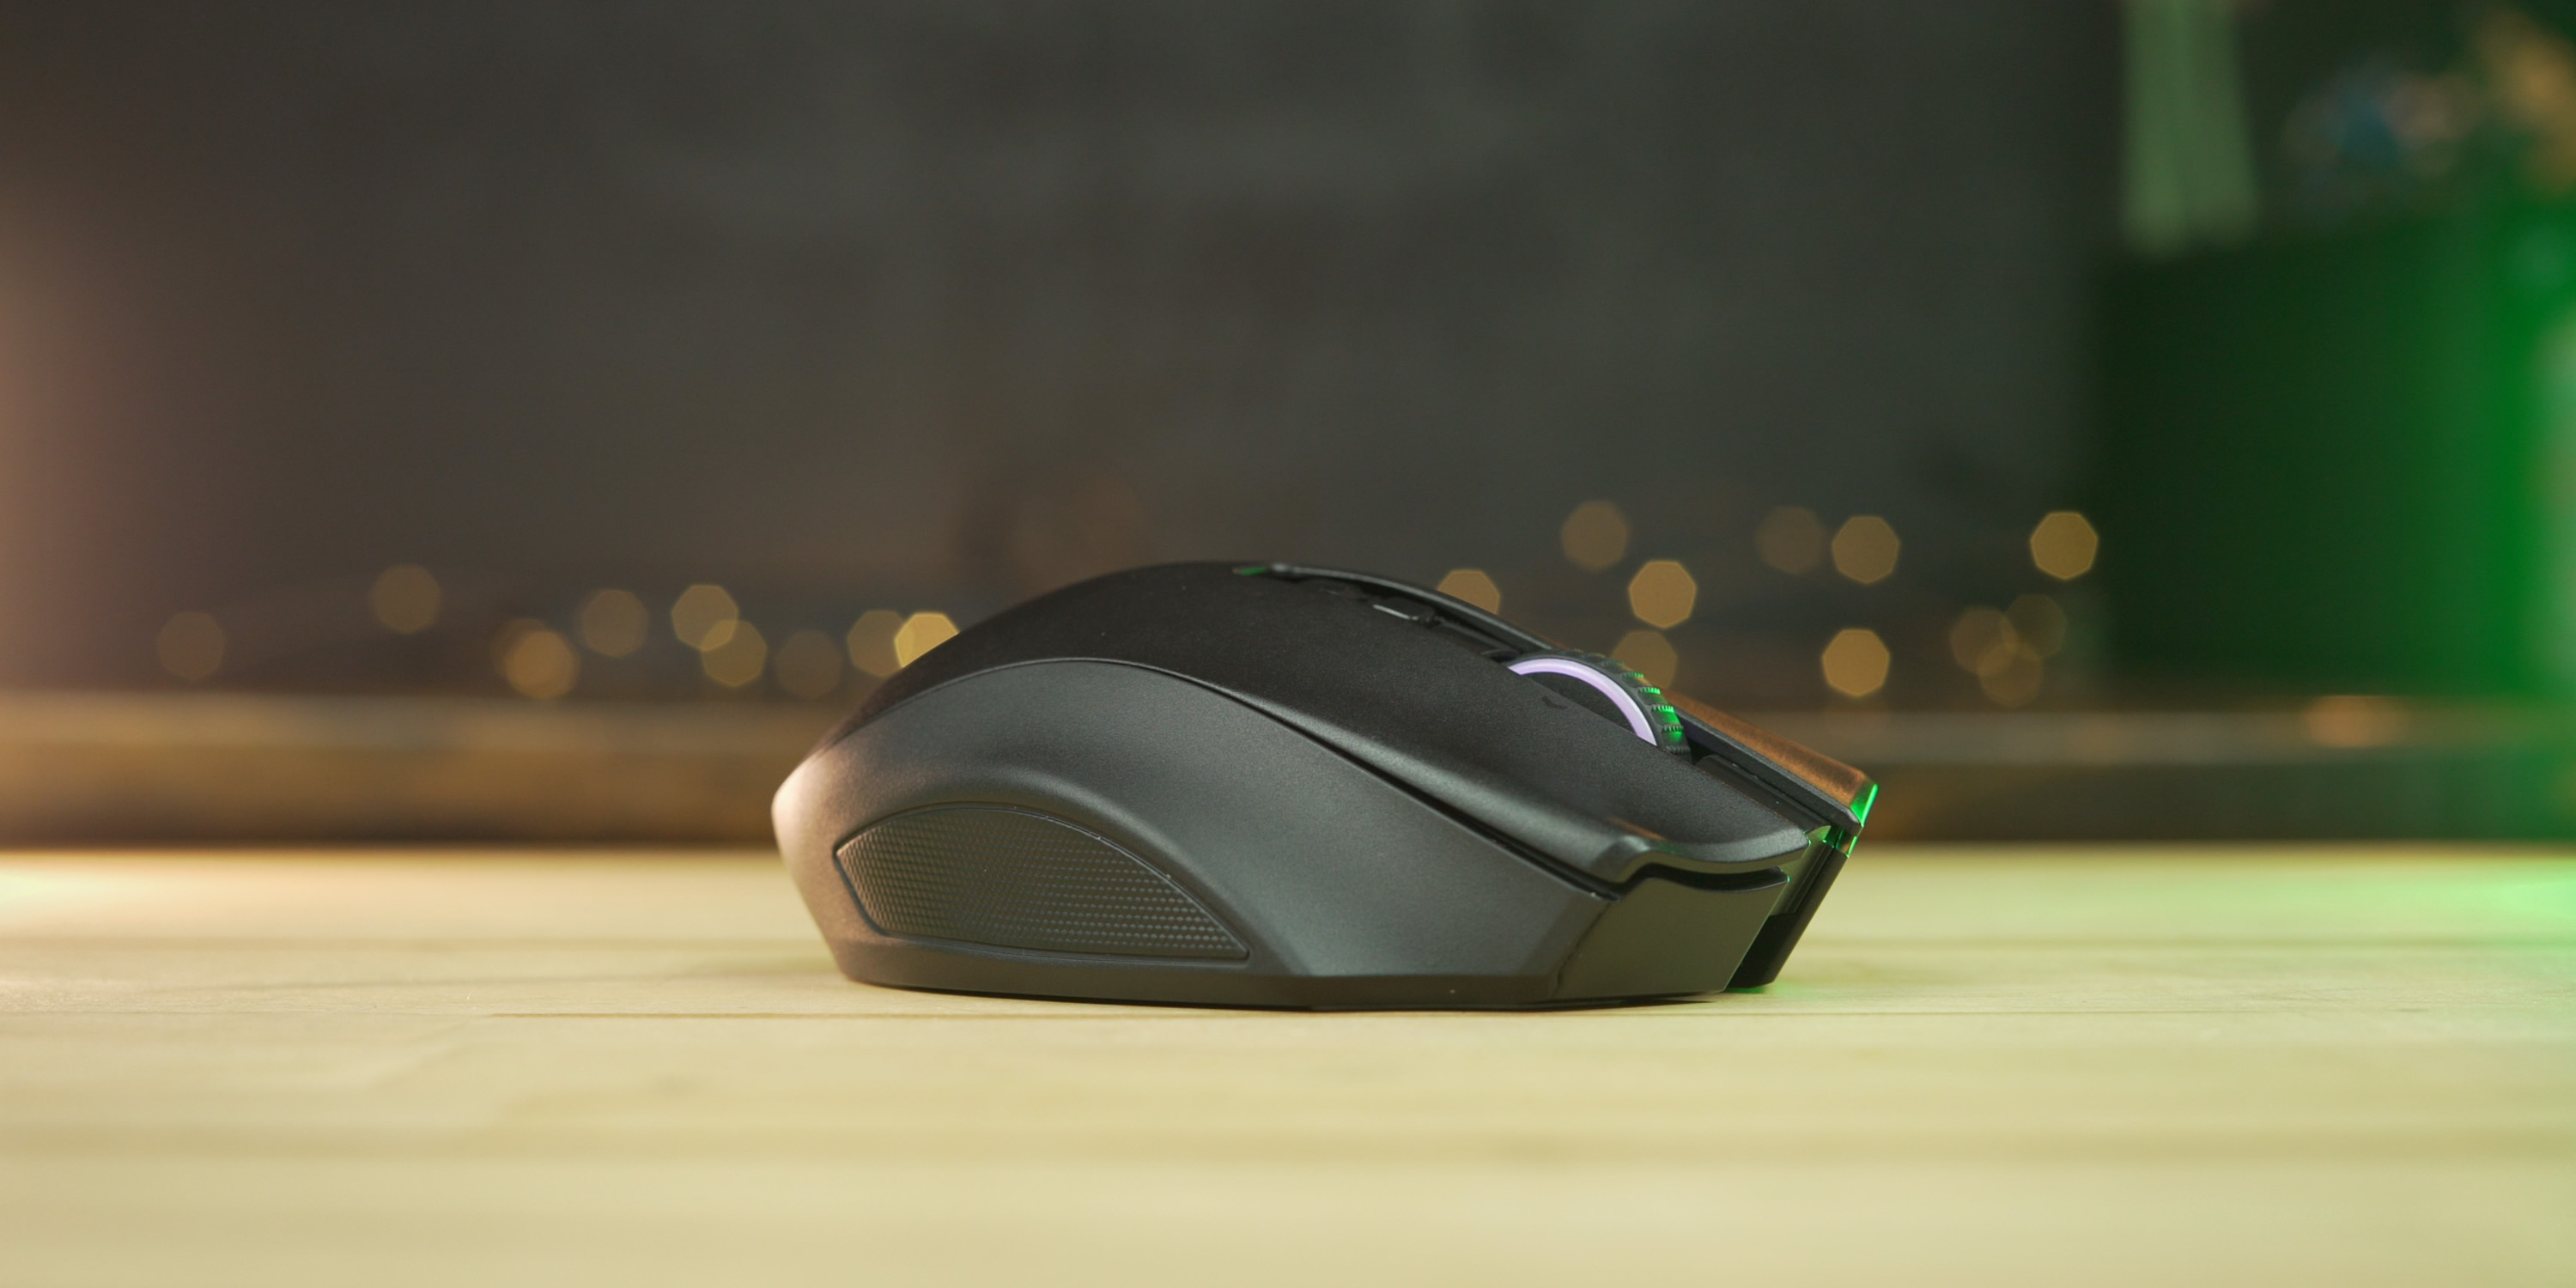 Right side of the Razer Naga Pro